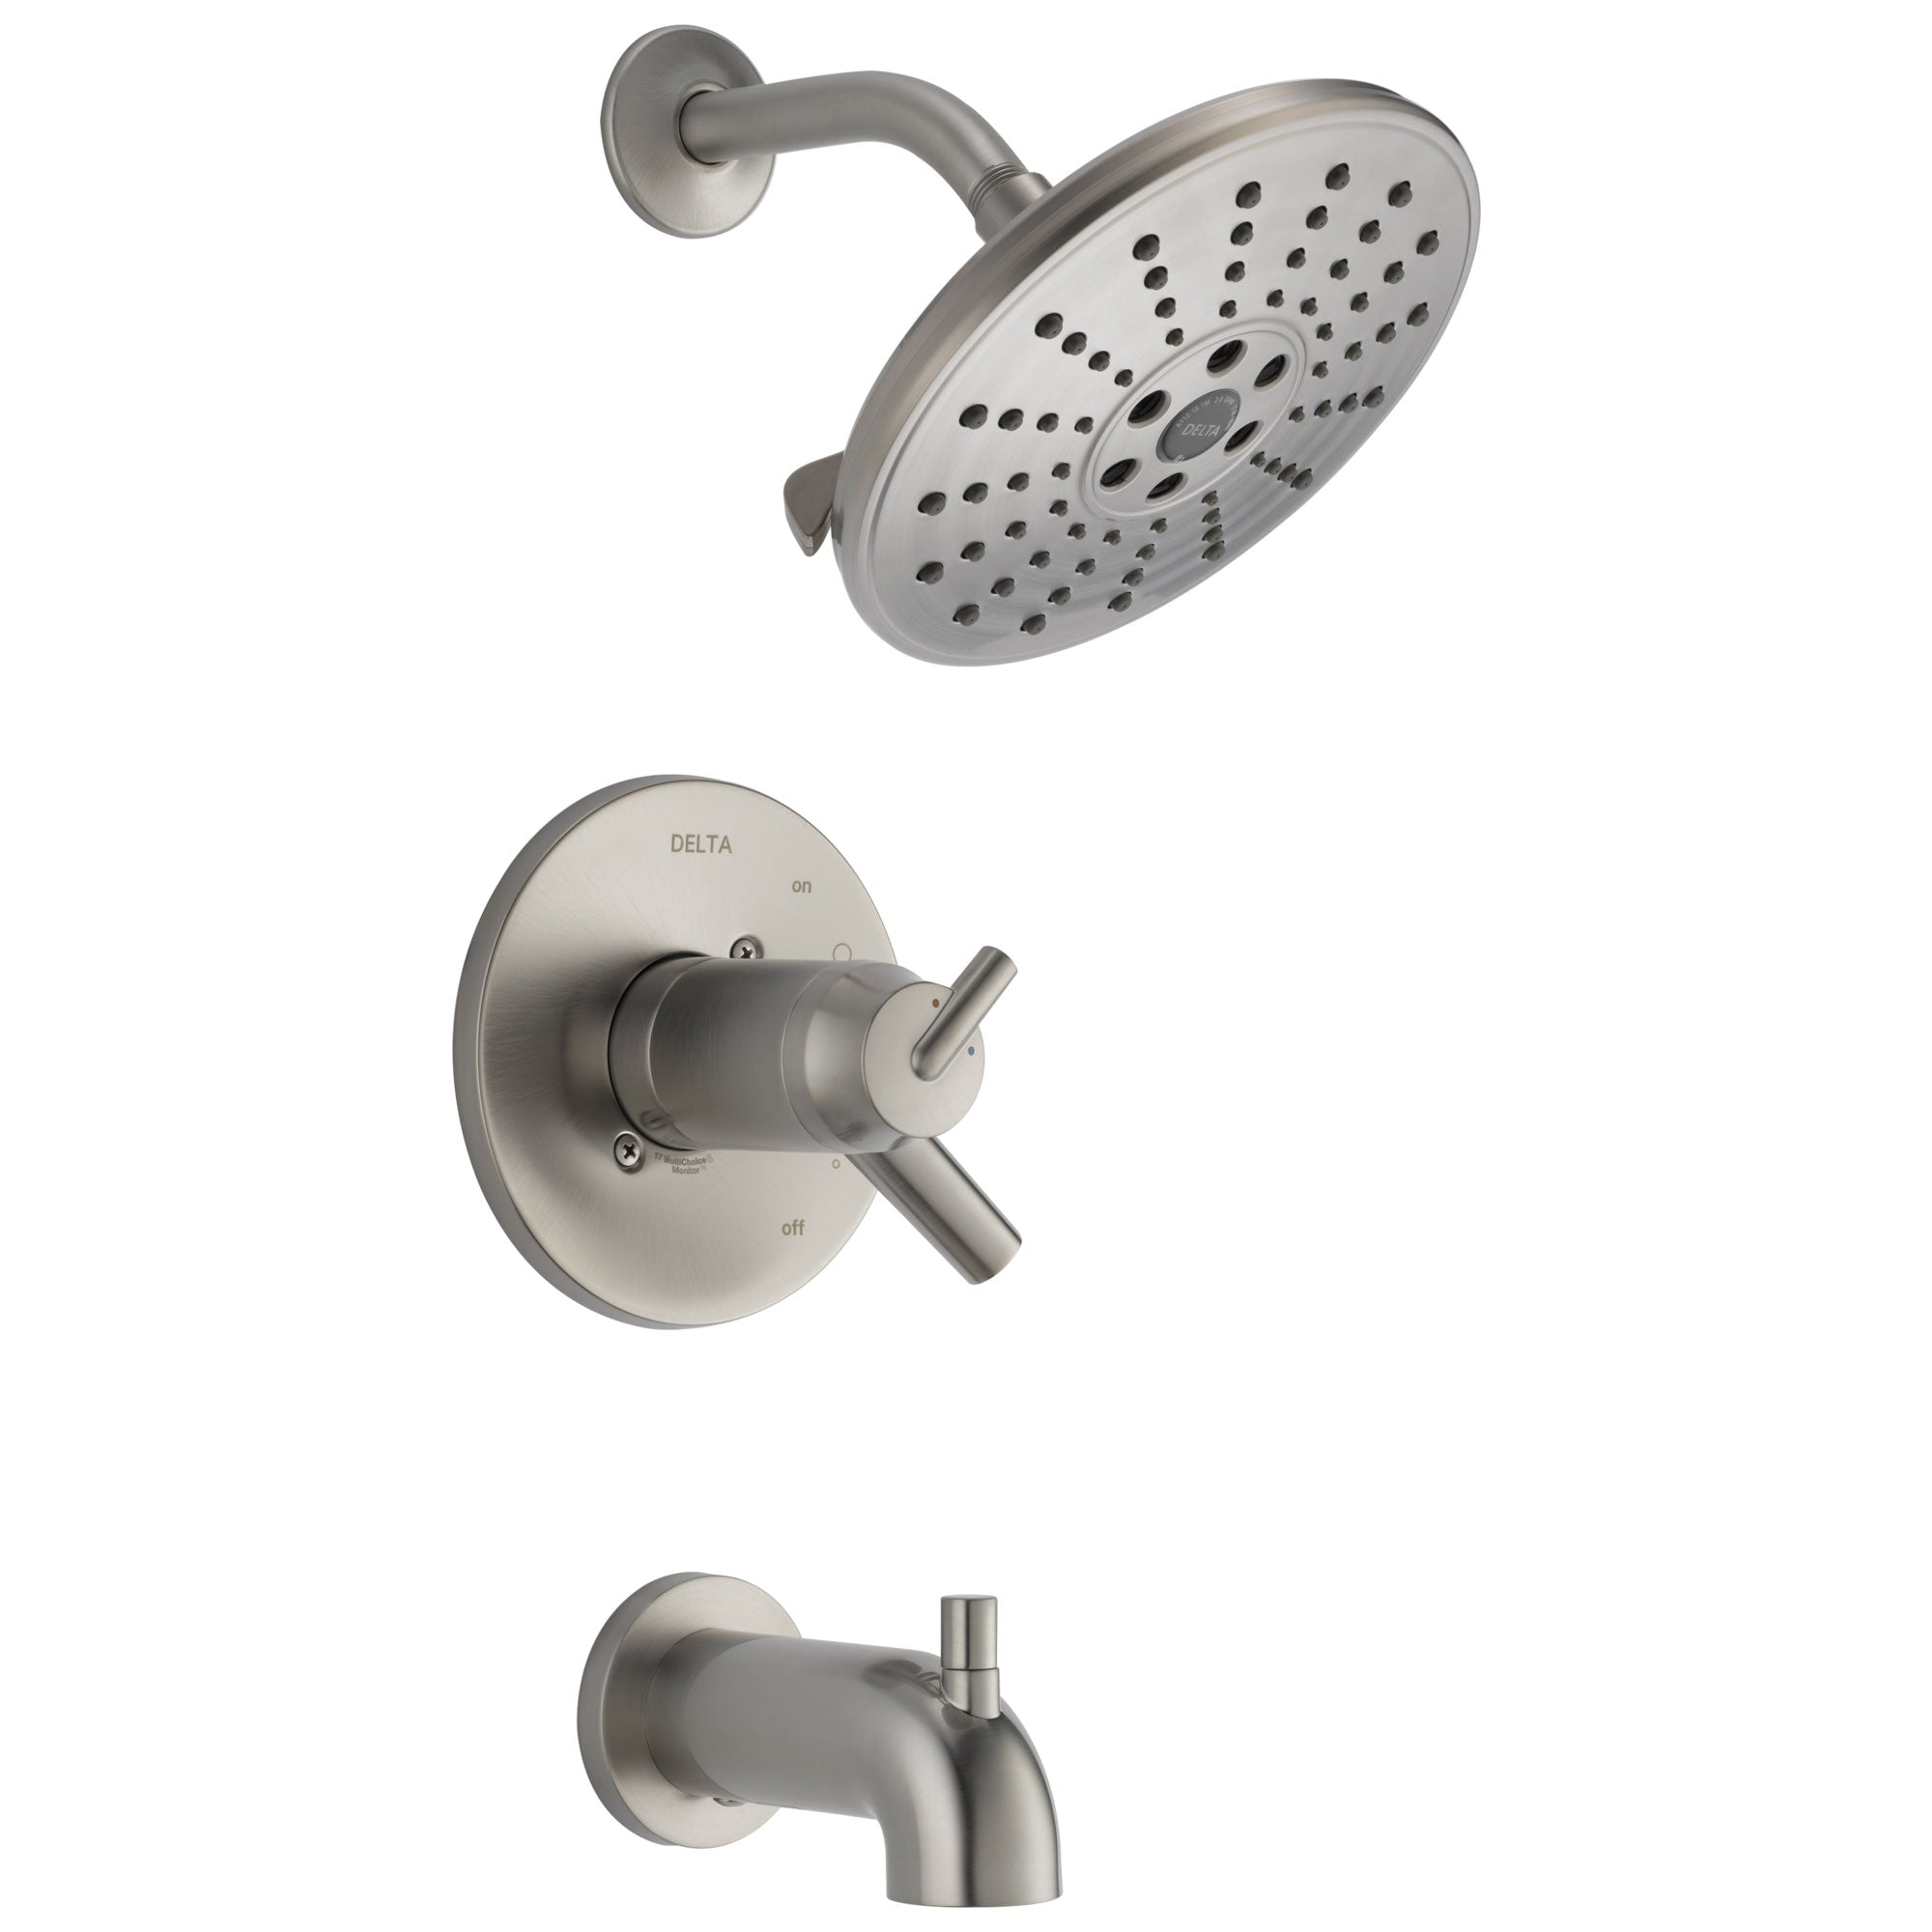 Delta Trinsic Collection Stainless Steel Finish TempAssure 17T Watersense Thermostatic Tub and Shower Combo Faucet Trim (Requires Valve) DT17T459SSH2O